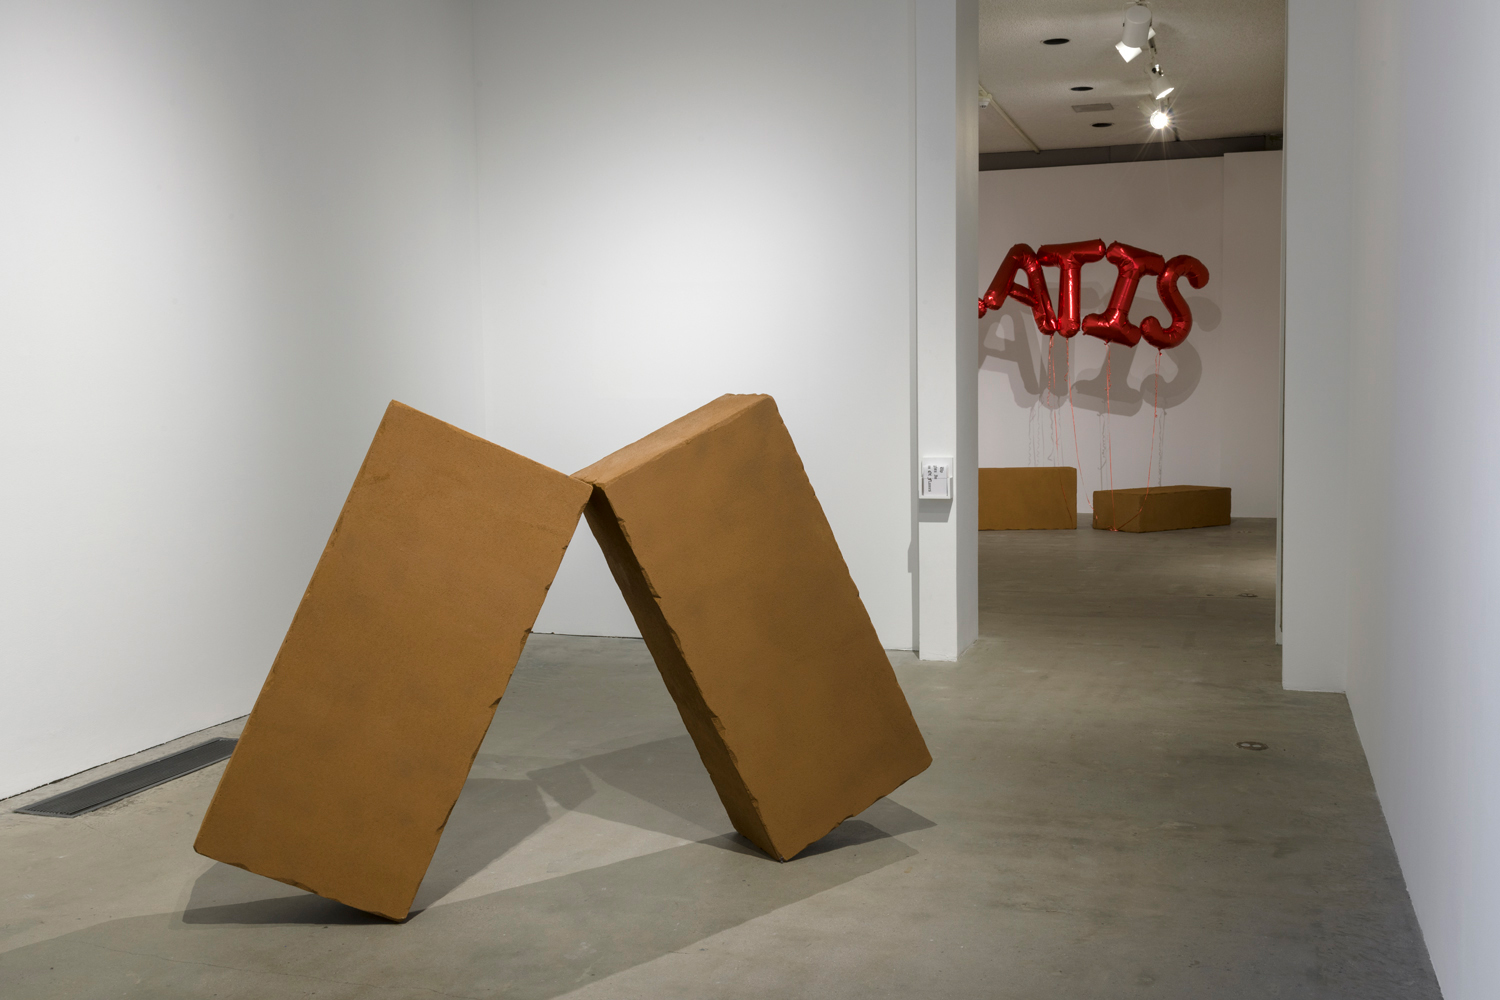 In this artwork installation by the artist Juan Capistrán, there are two large faux brick sculptures leaning against each other. Behind these works in the next room, there are two more faux brick sculptures placed on the ground. Attached to these sculptures are red, metallic balloons that say